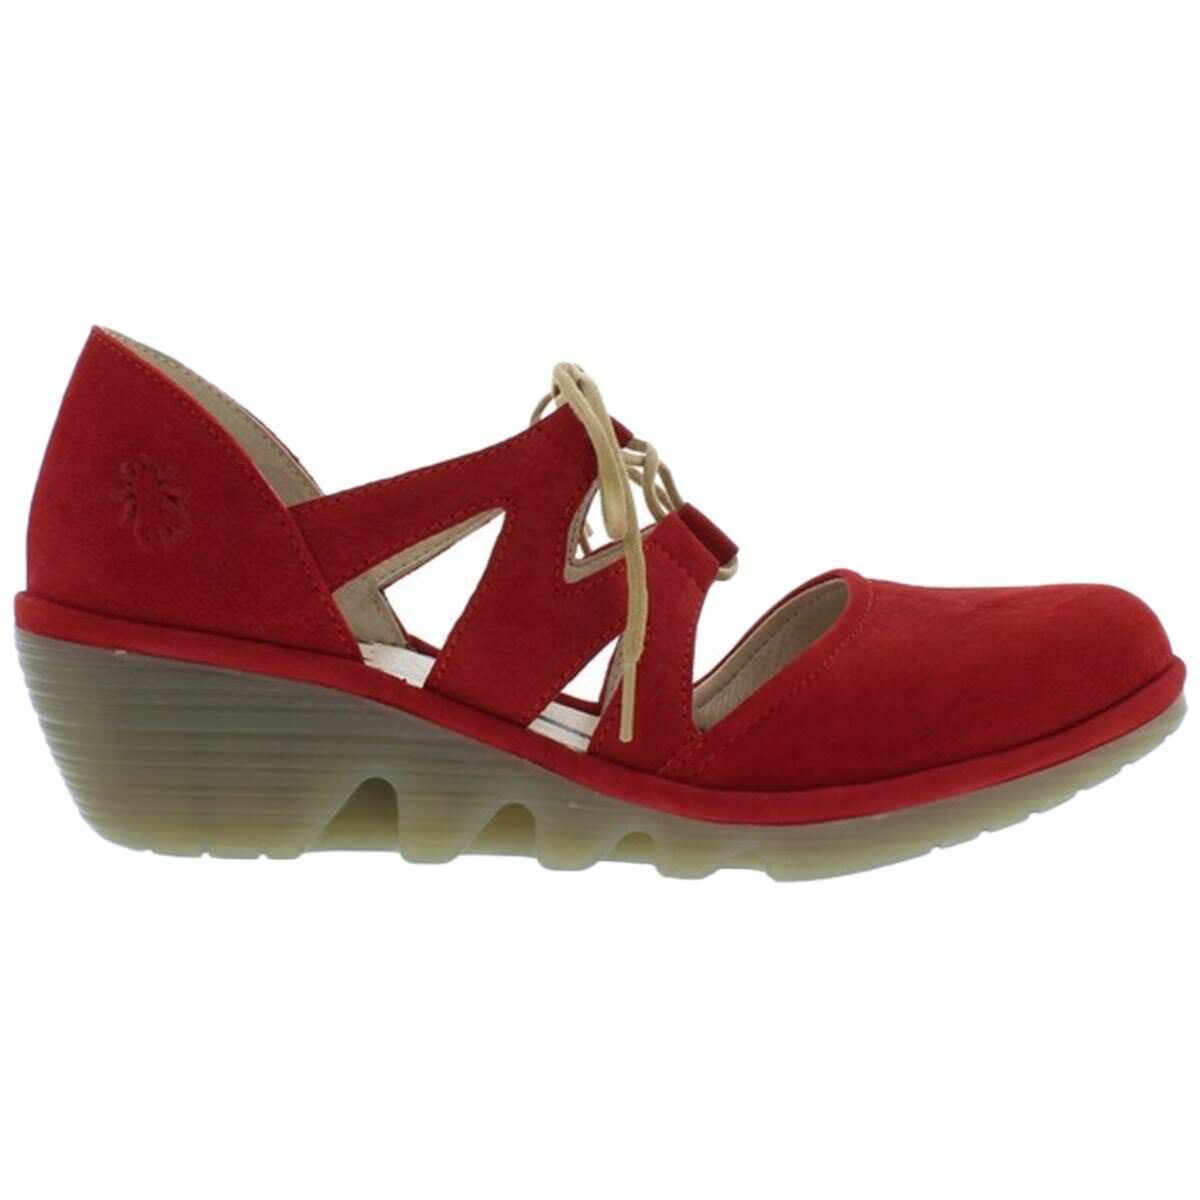 Último gran descuento Fly London Phis 843 Lipstick Red Womens Nubuck Lace-Up Wedge Shoes